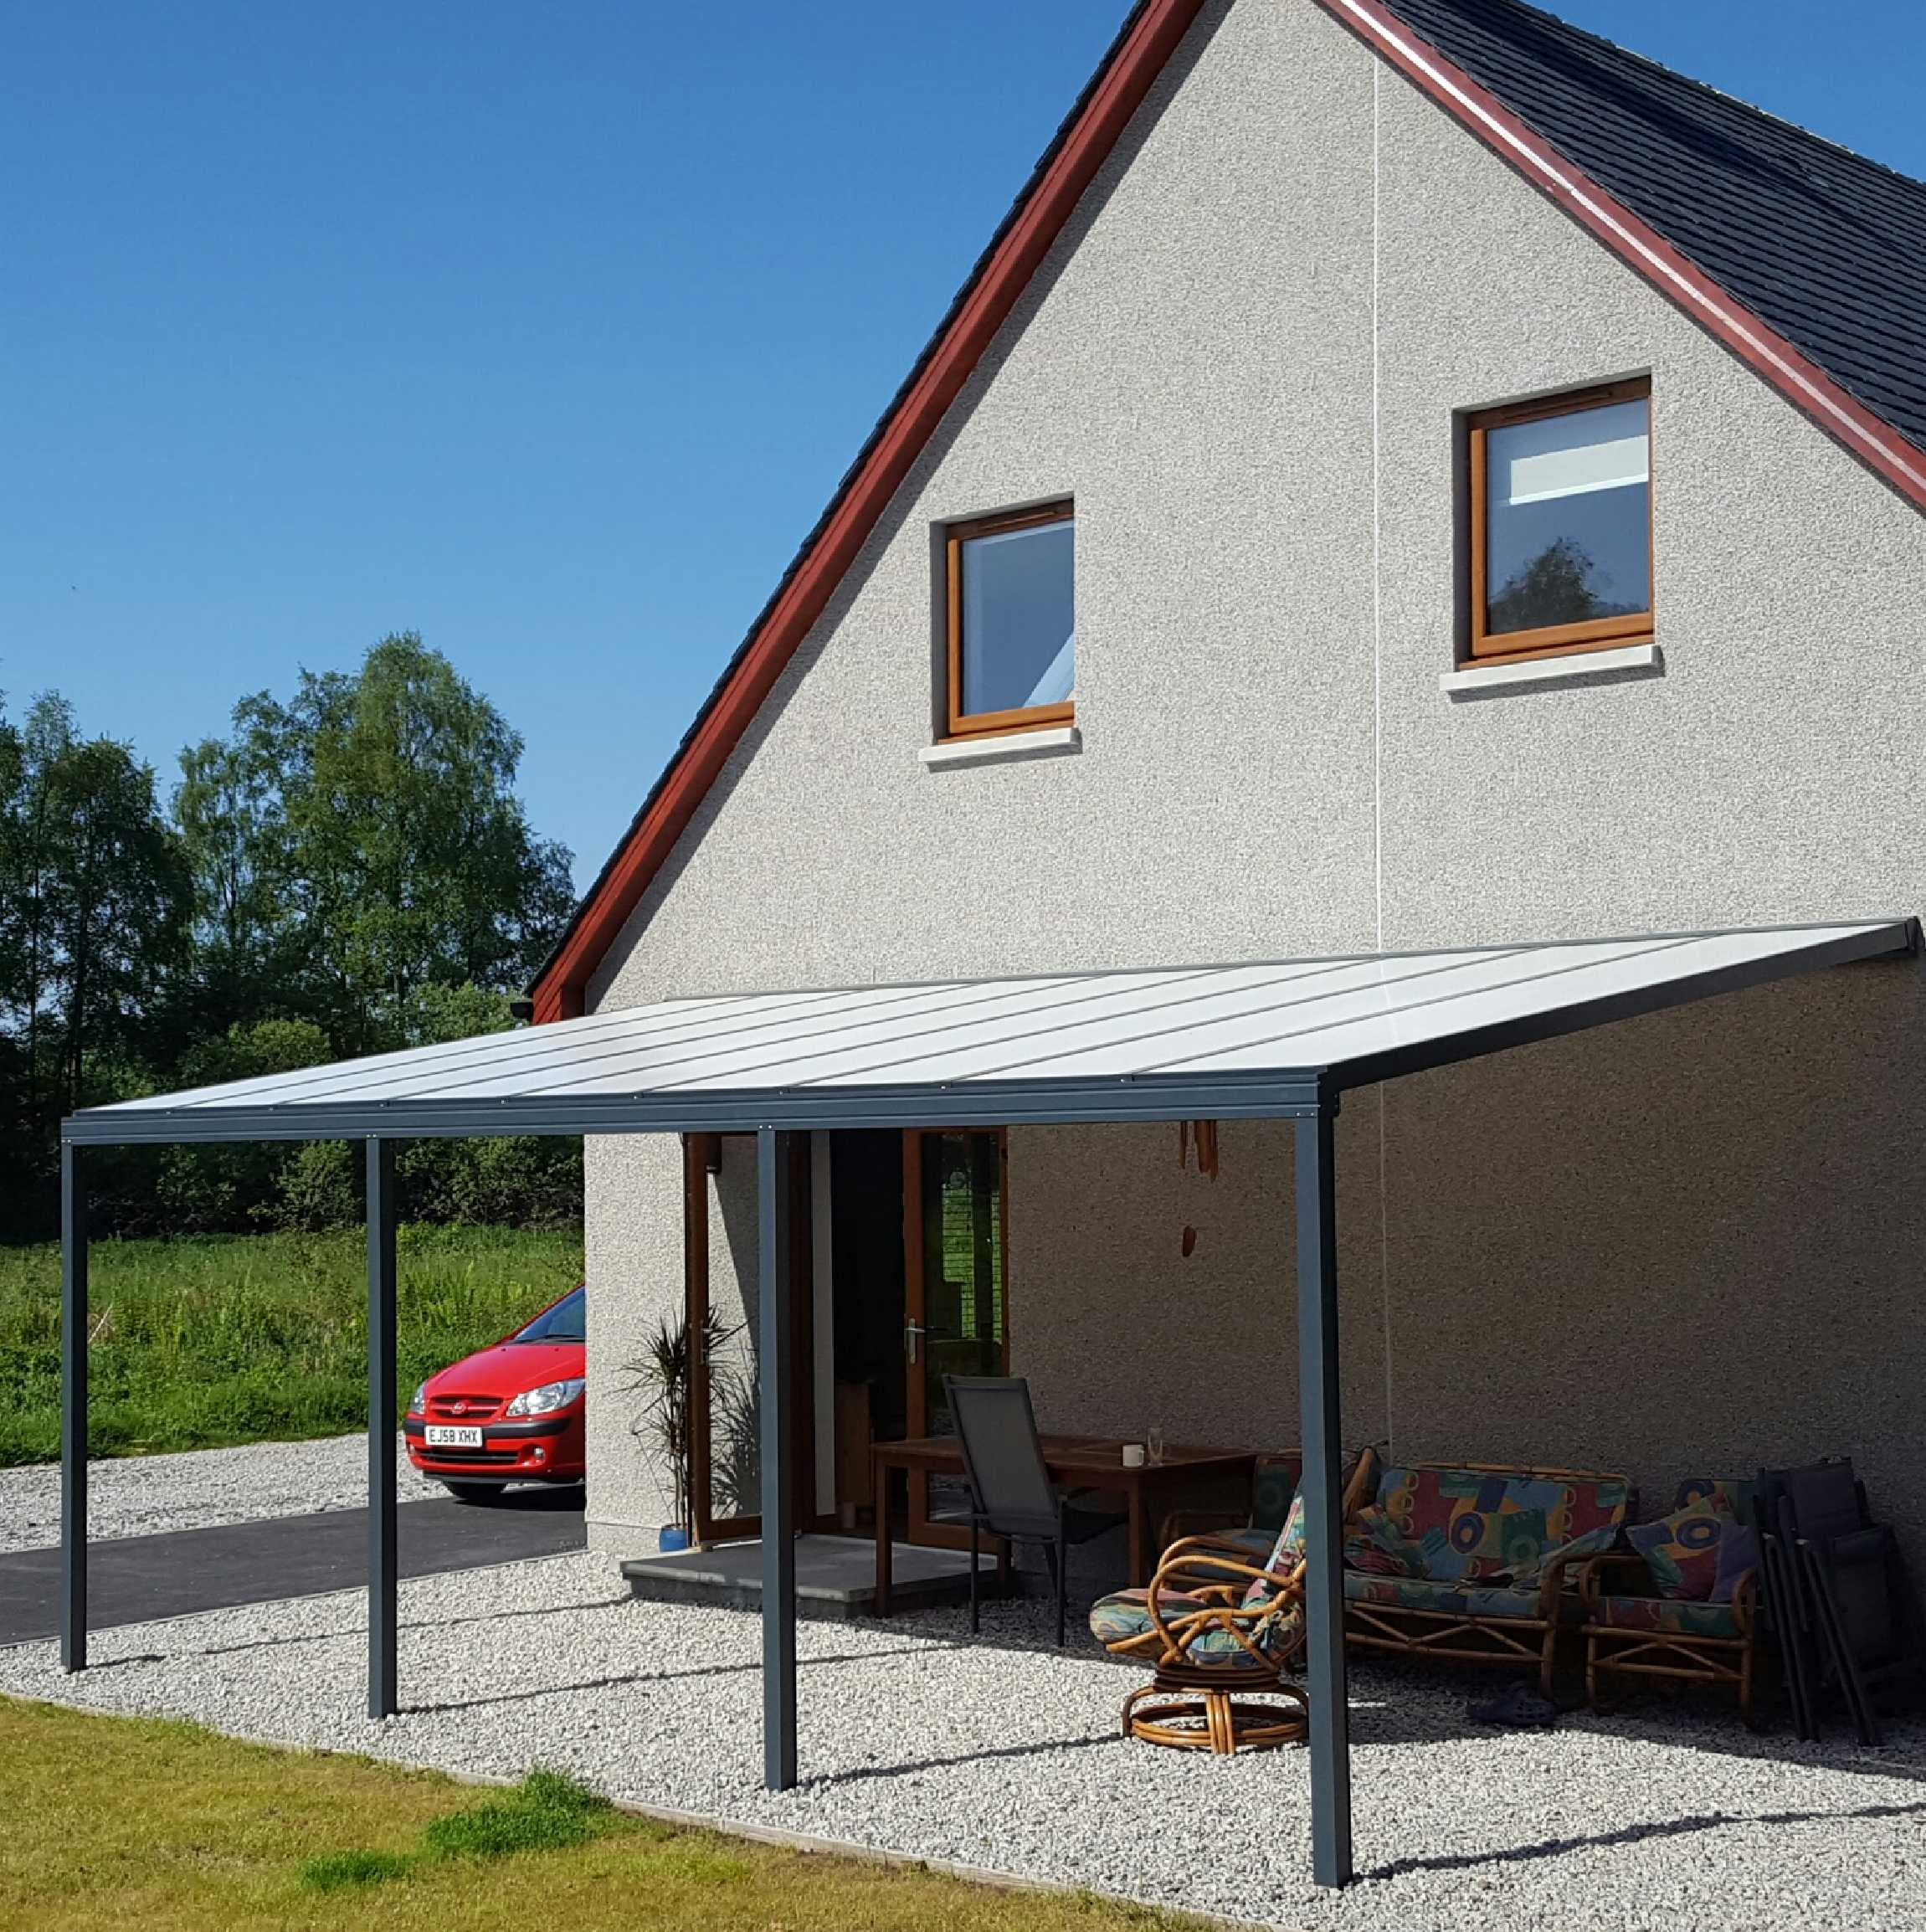 Great selection of Omega Smart Lean-To Canopy, Anthracite Grey, 16mm Polycarbonate Glazing - 11.4m (W) x 4.0m (P), (5) Supporting Posts